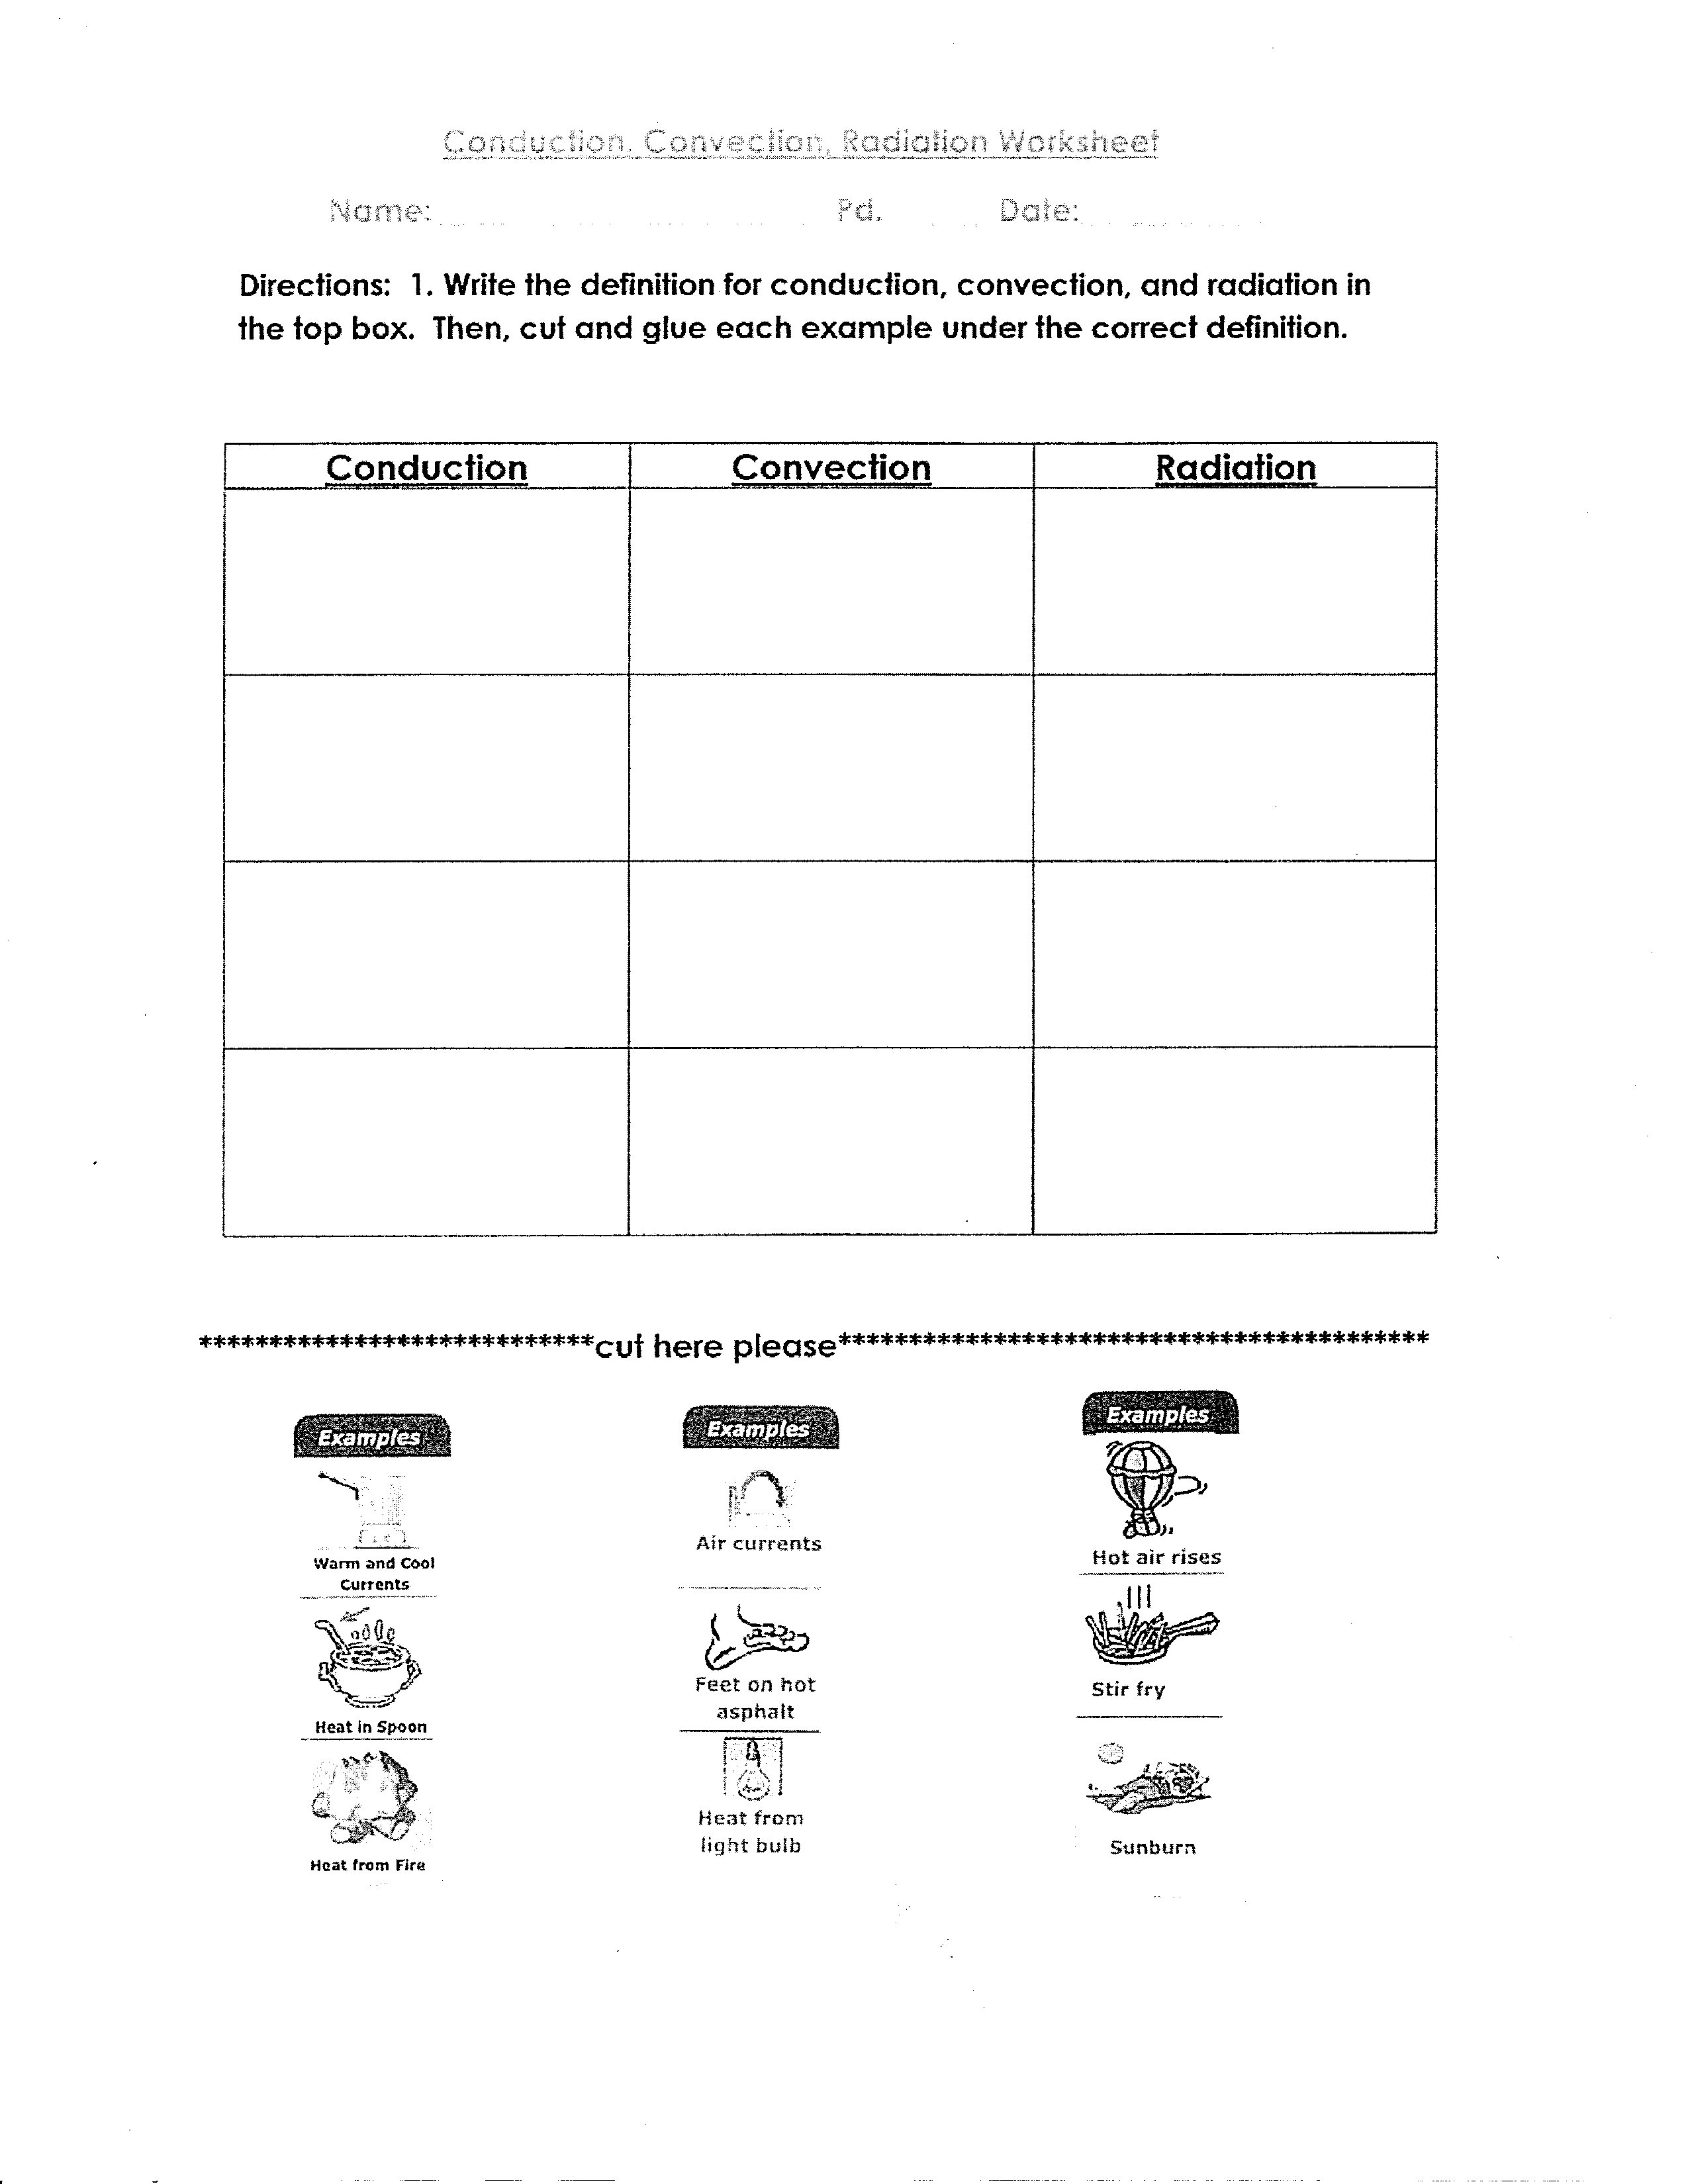 Worksheets Conduction Convection Radiation Worksheet conduction convection radiation worksheet free worksheets library ssignments mr em n